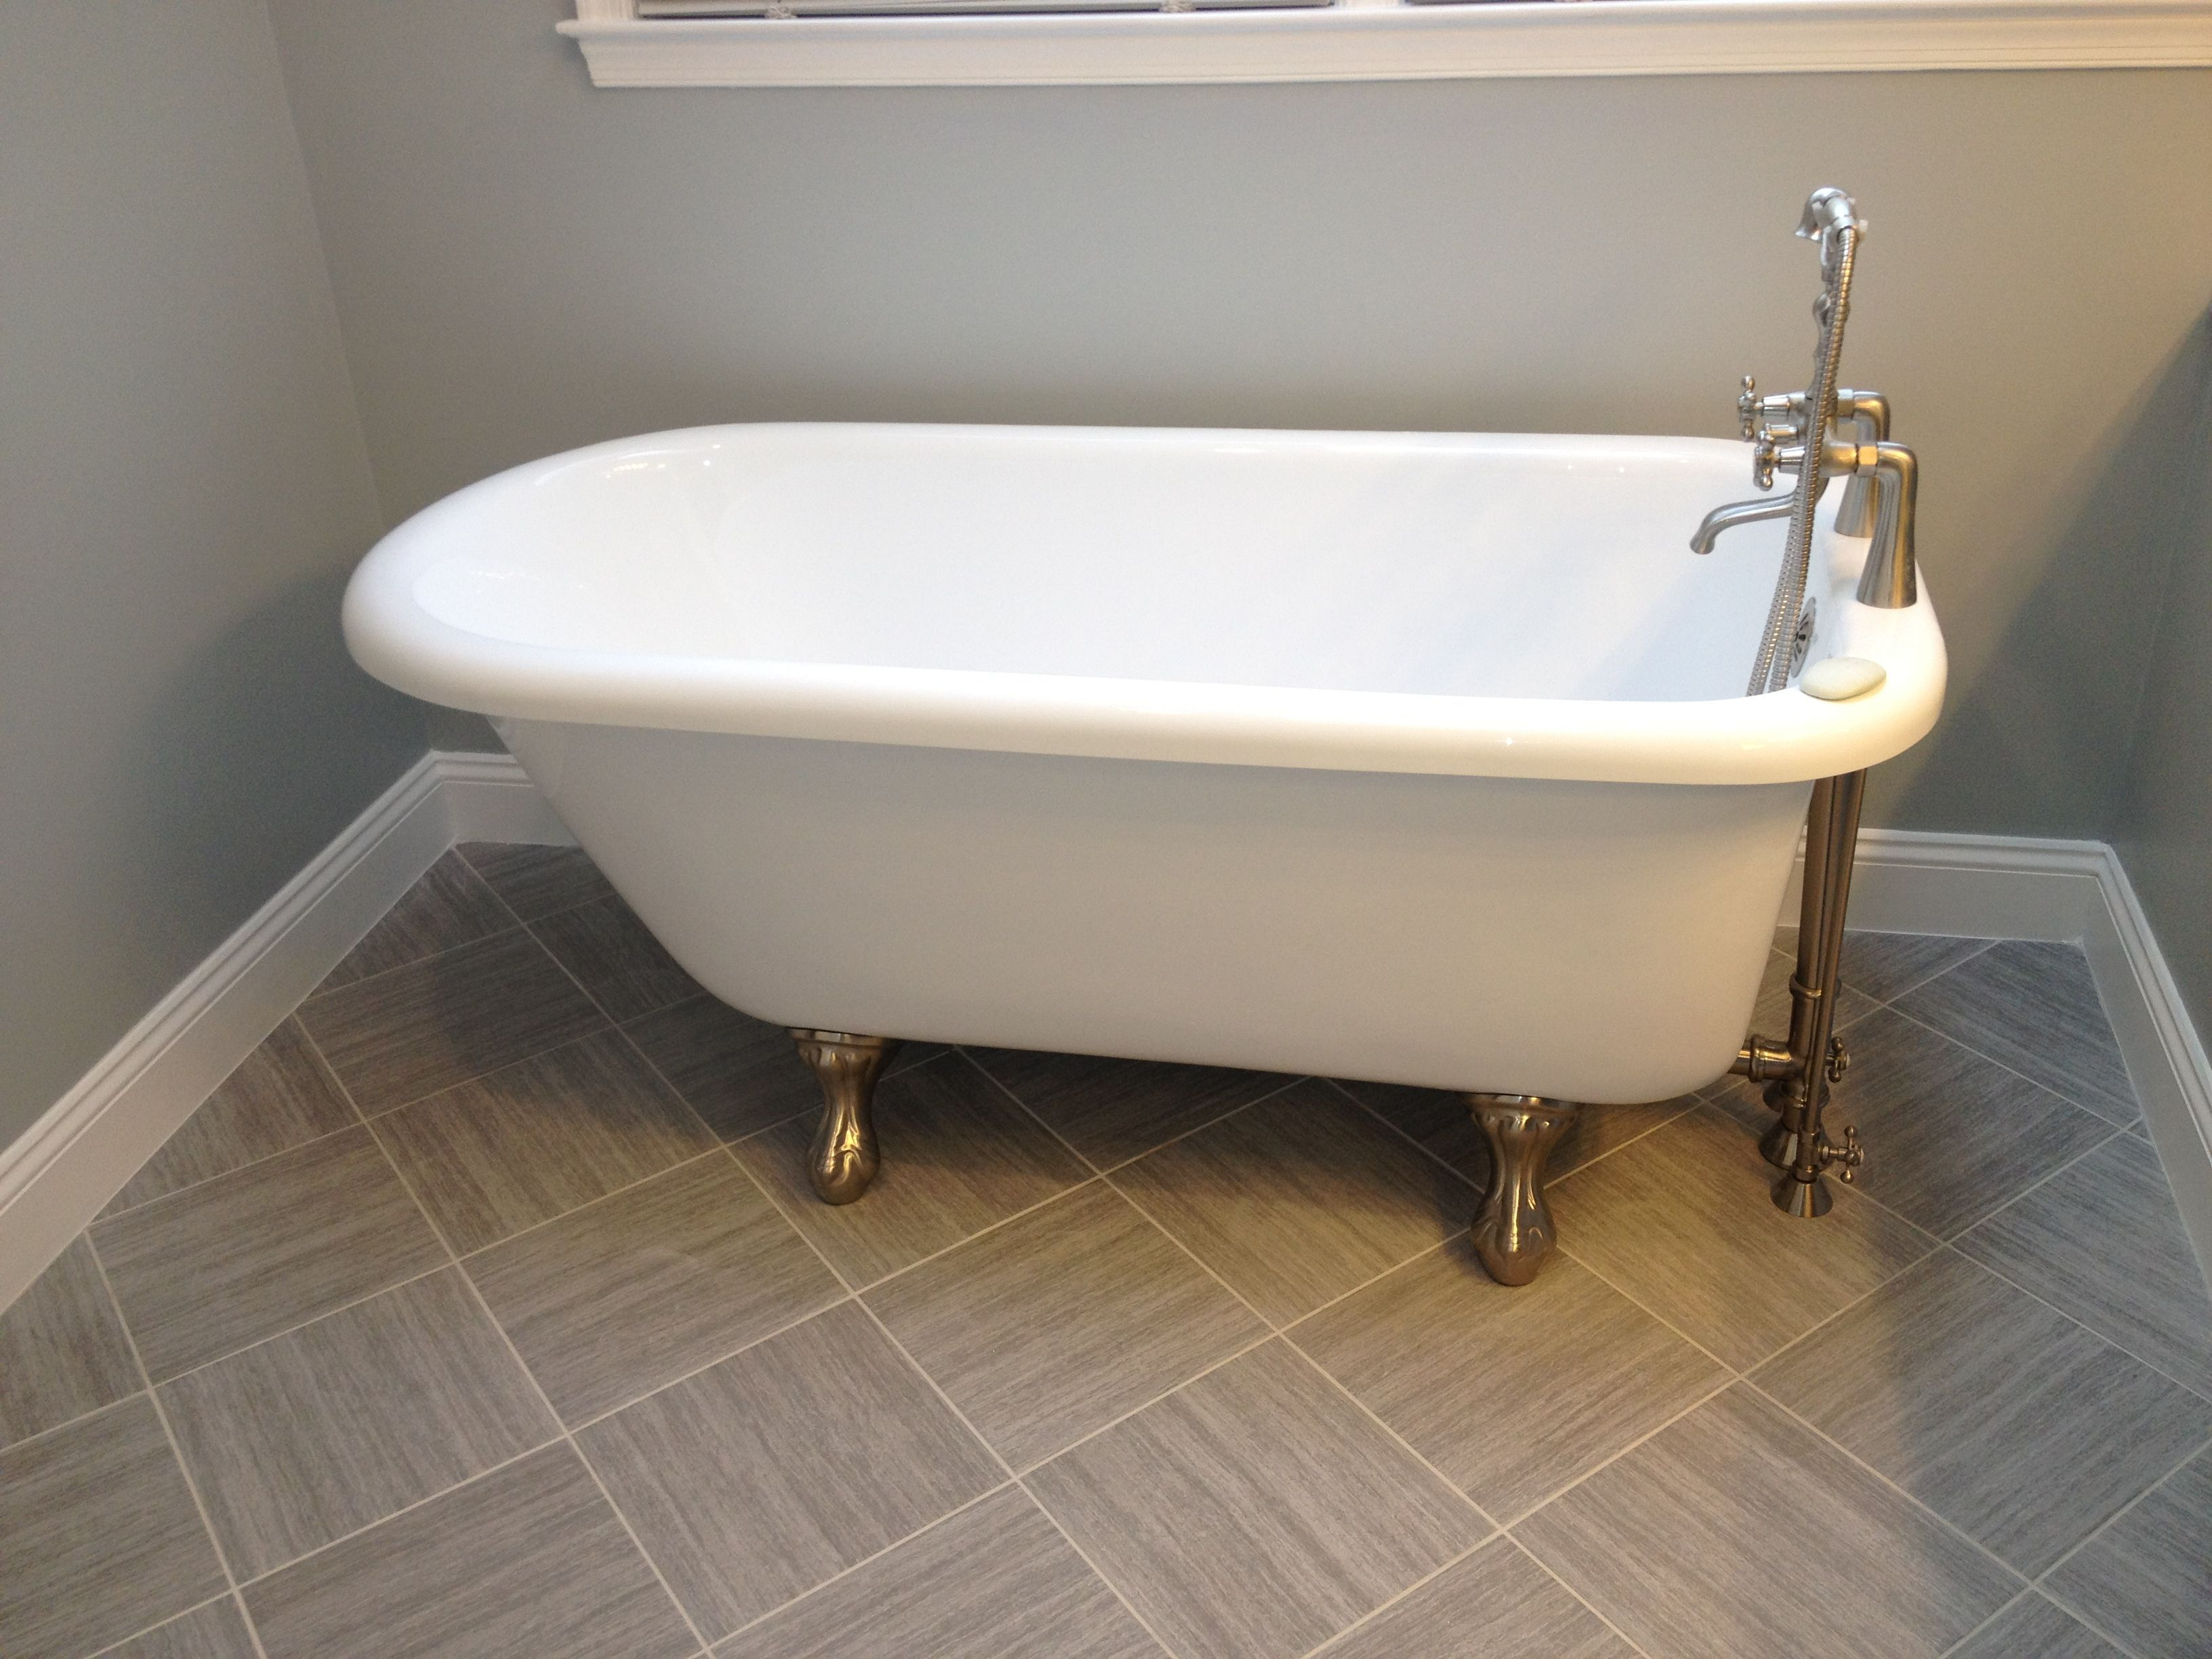 clawfoot tub | Inspirations | Pinterest | Tubs, Bathroom laundry ...